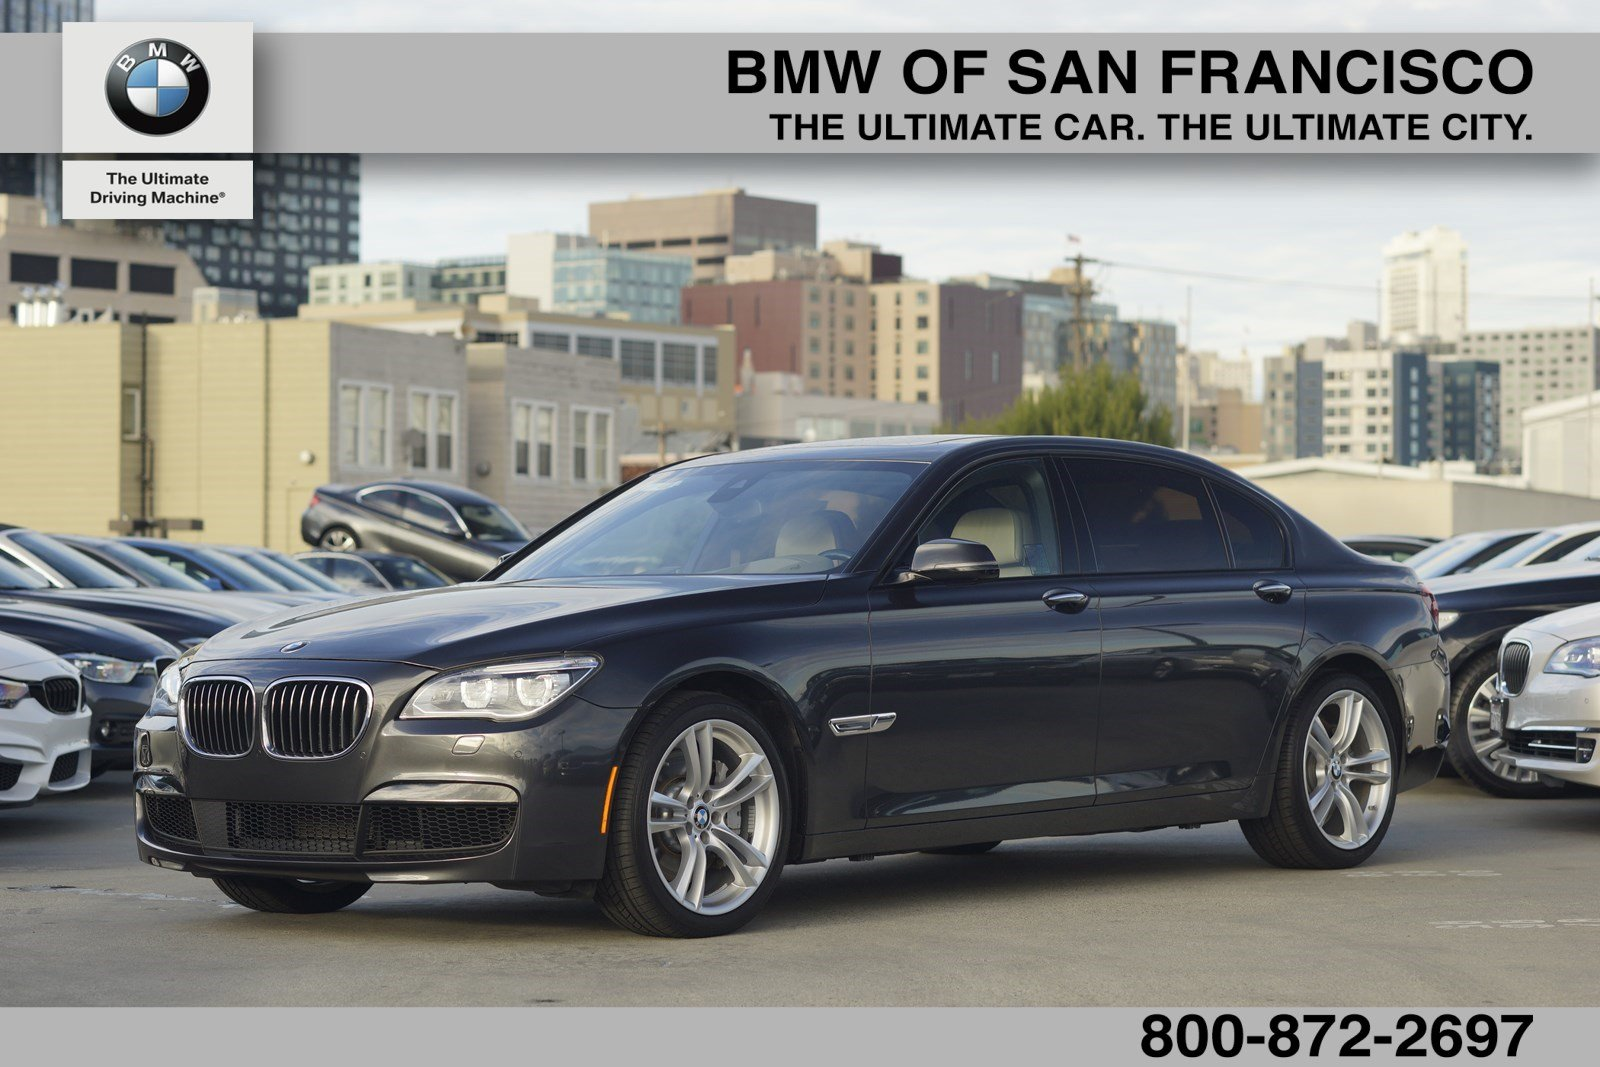 certified pre-owned 2015 bmw 7 series 750li 4dr car in san